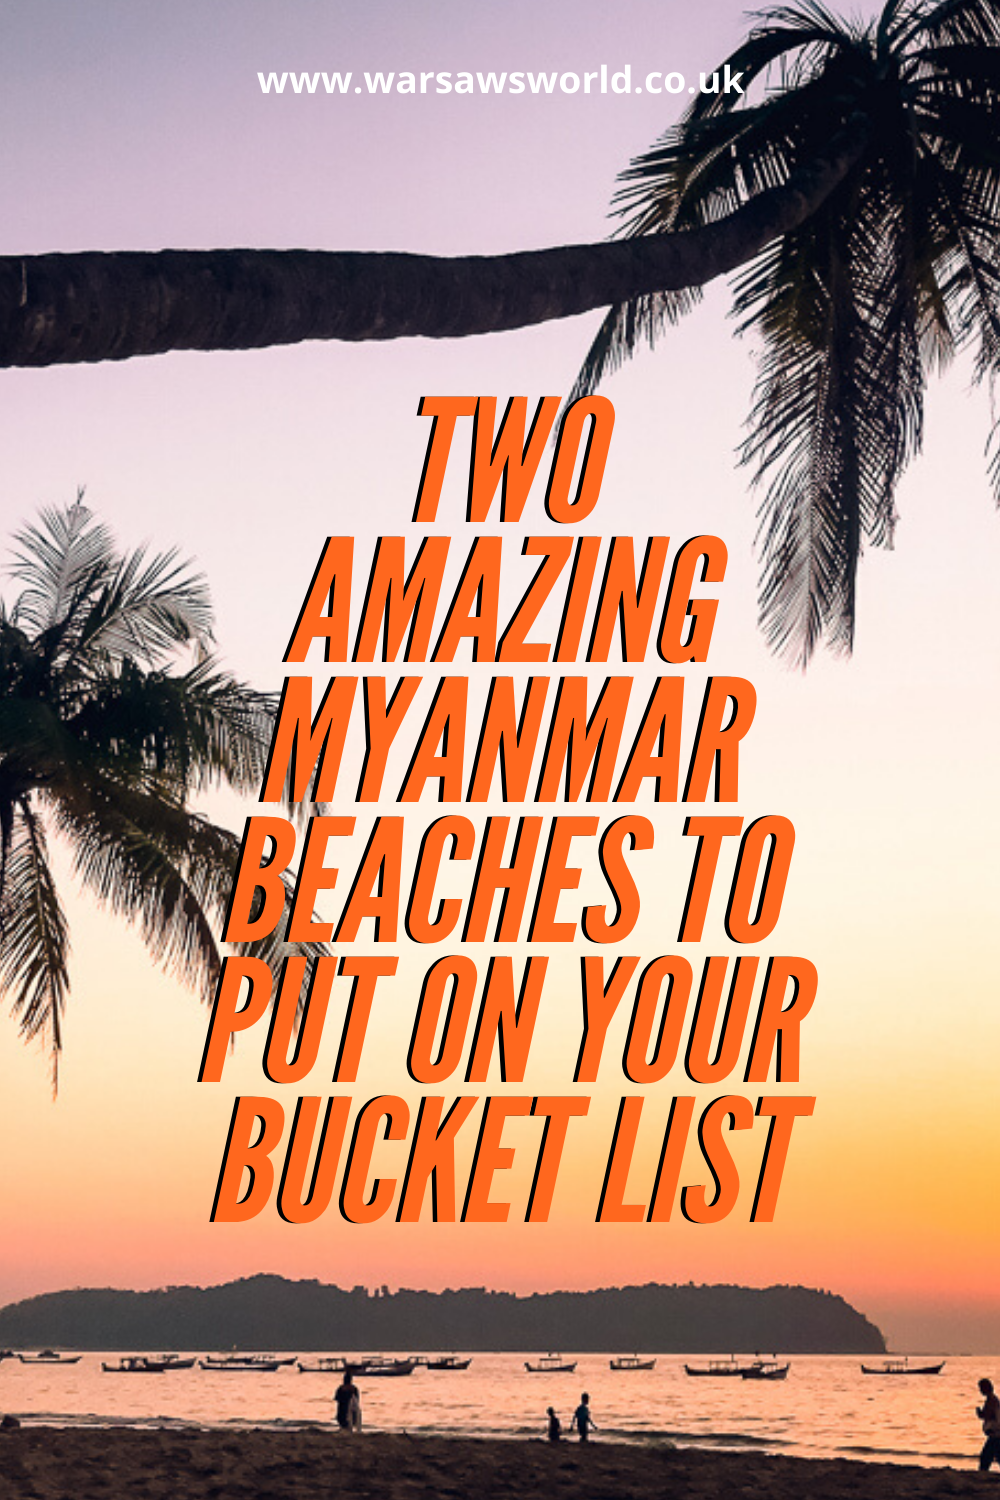 Two amazing Myanmar beaches to put on your bucket list